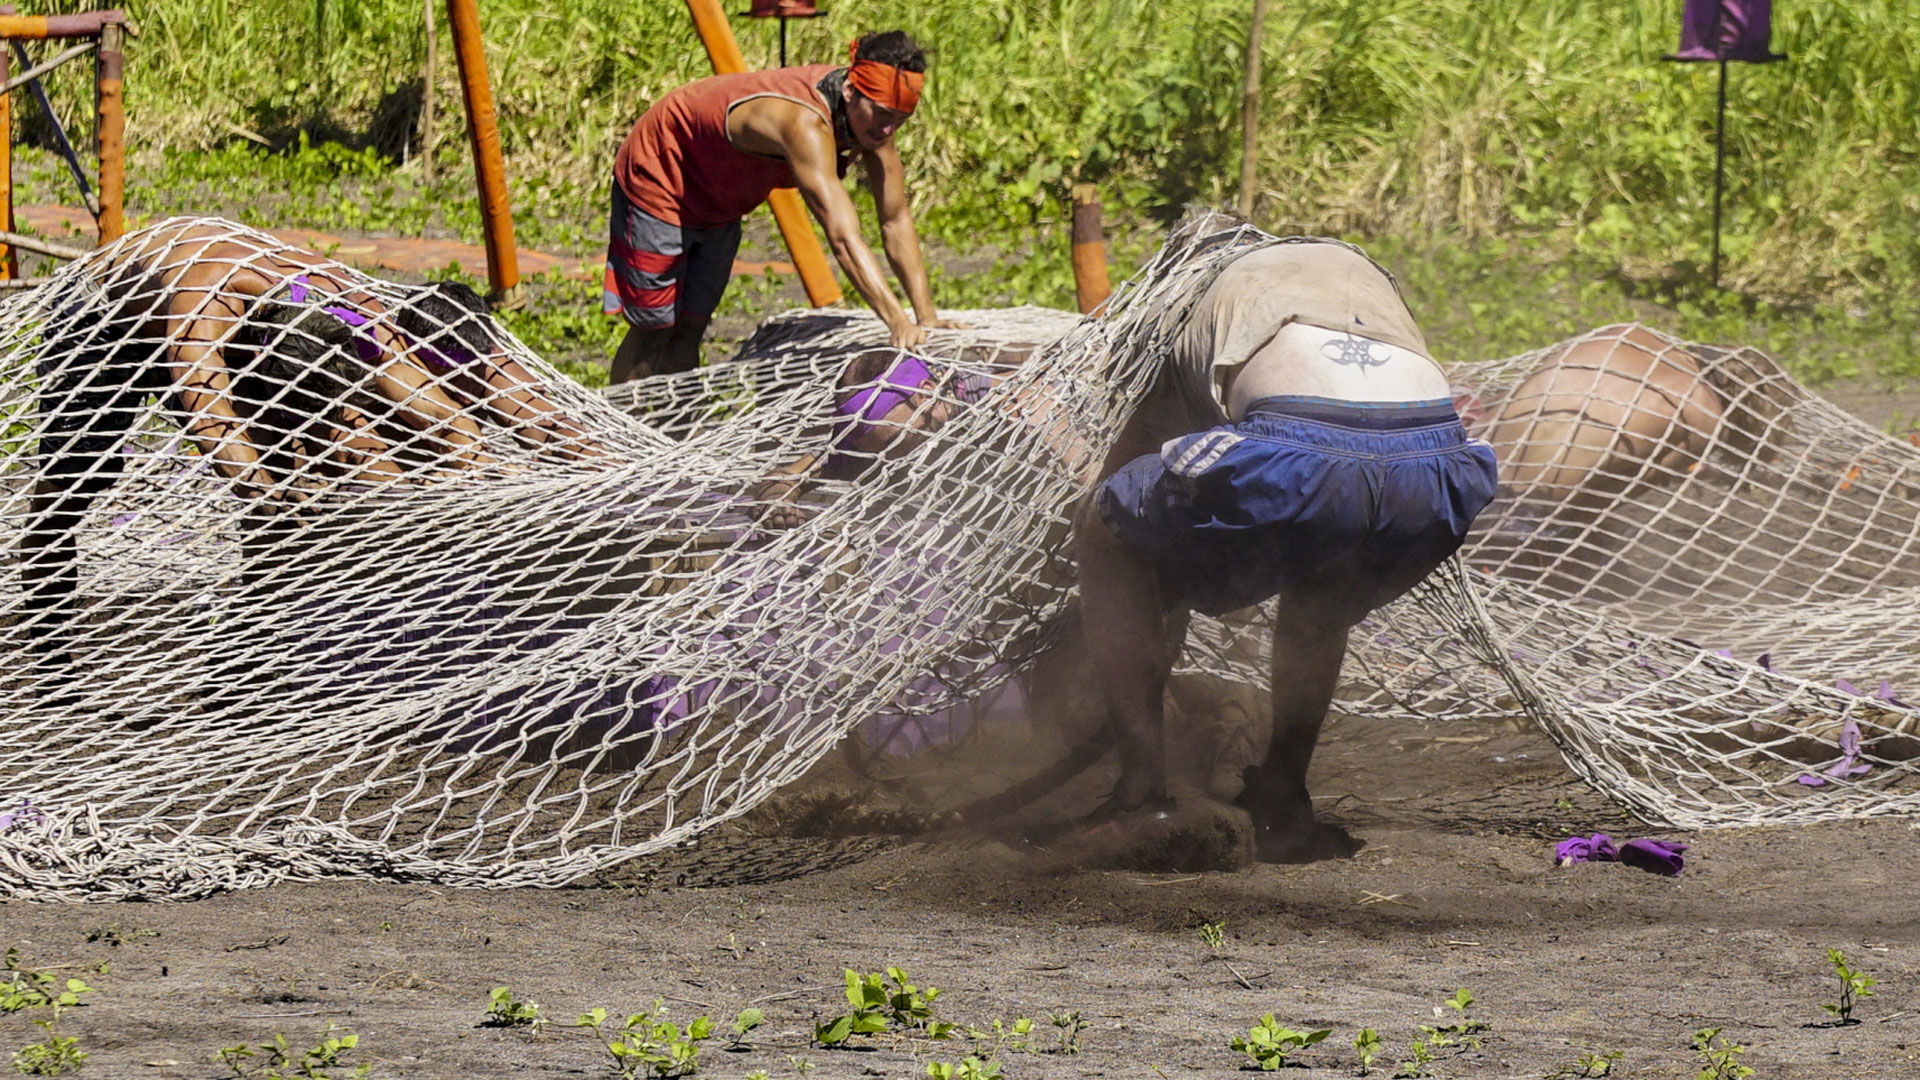 Dragging a box underneath a net is no easy task.